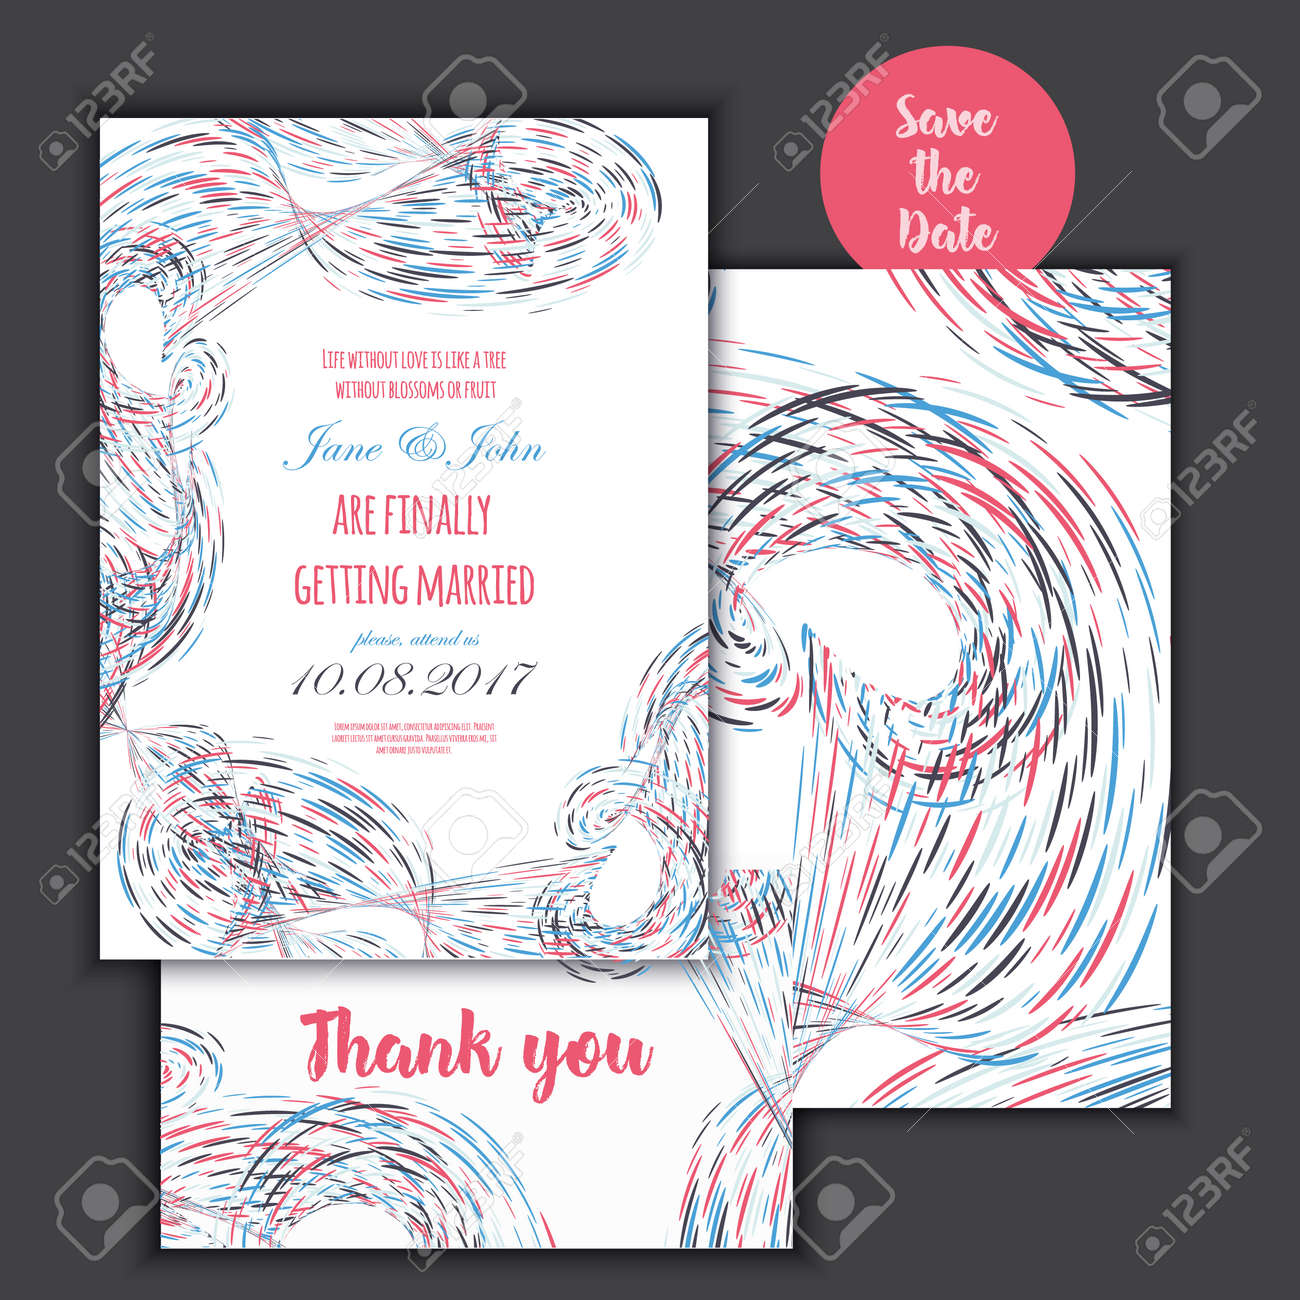 Geometry Save The Date Card With Modern Colorful Shapes Wedding